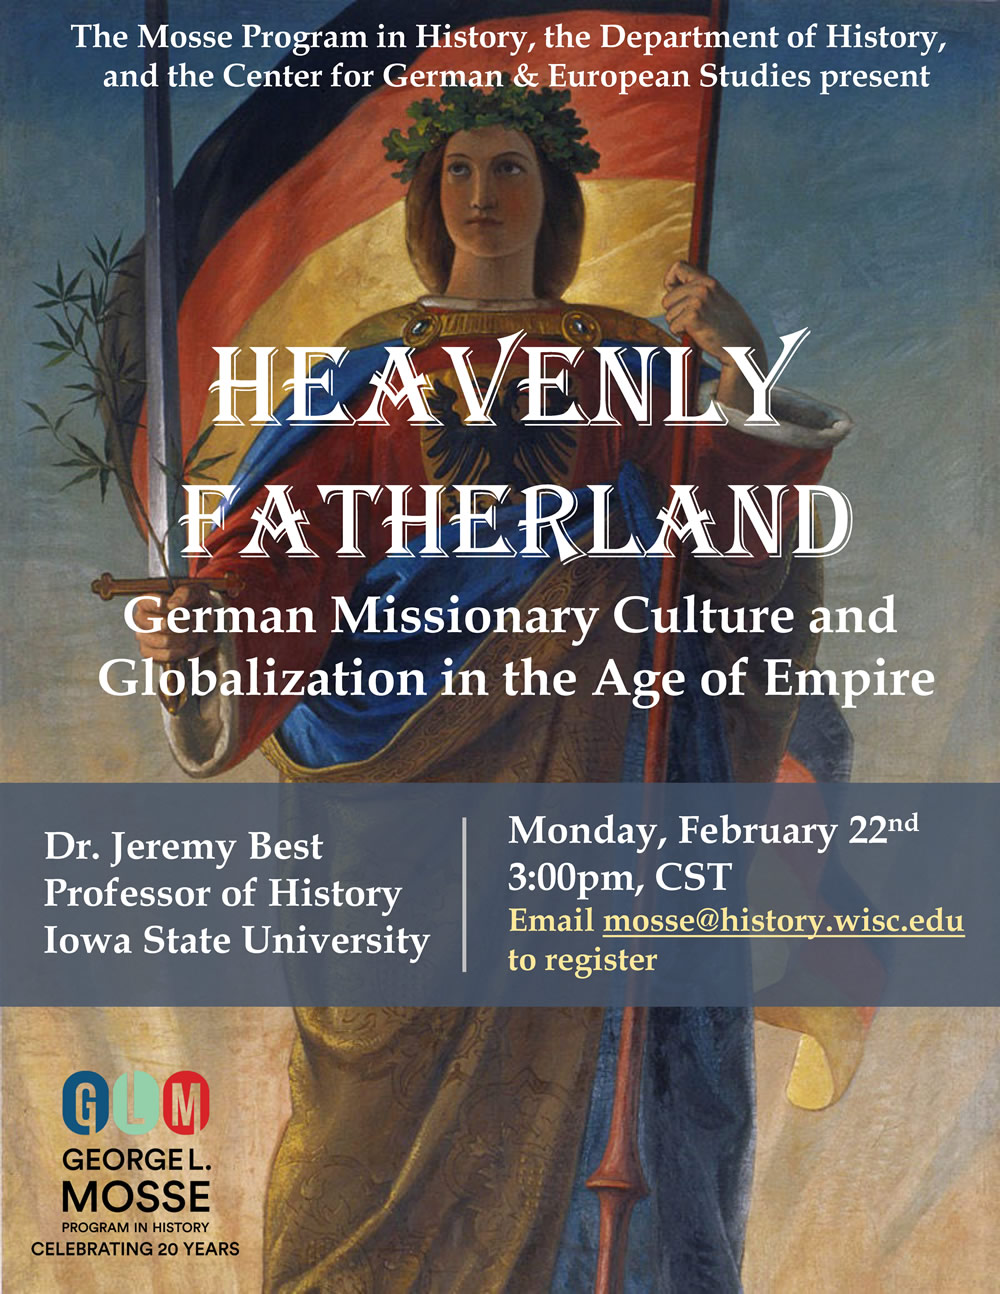 Book over: Heavenly Fatherland